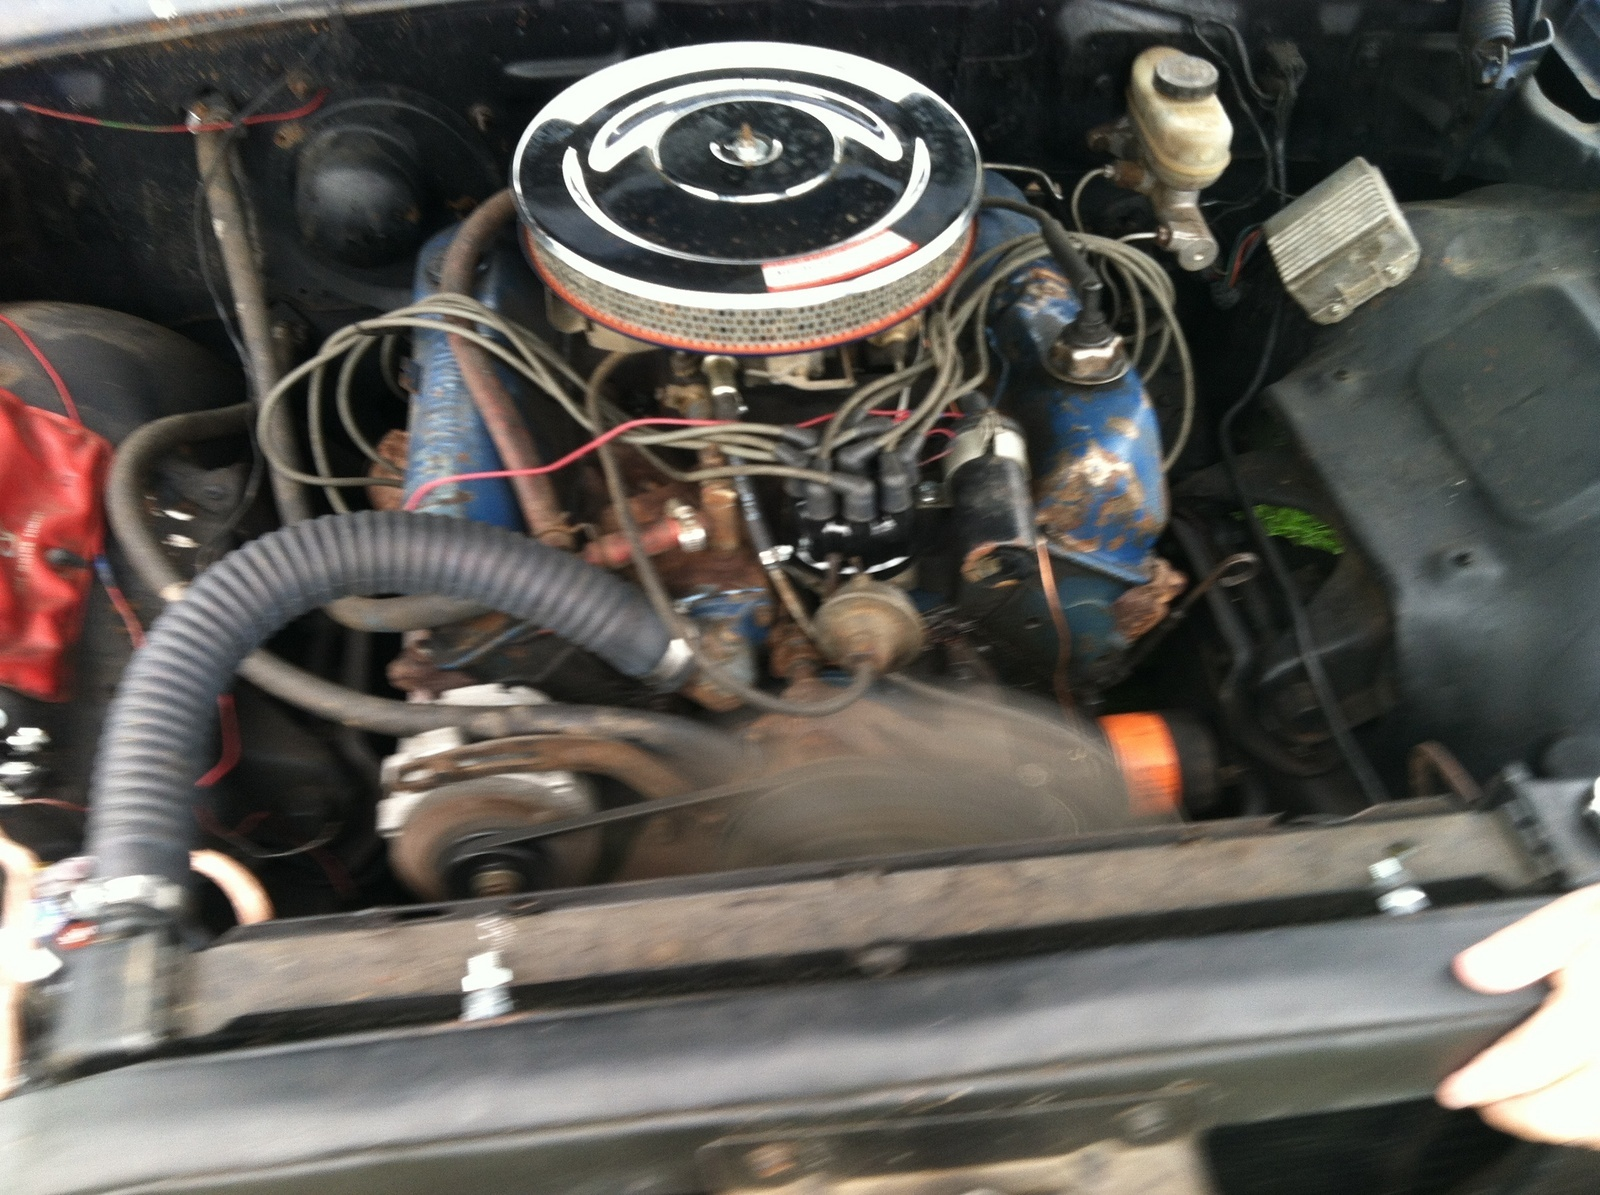 Ford Galaxie Questions I Need To Verify The Engine In My 62 1964 Rear End Codes 500 Was Told By Last Owner That He Believed It A 1971 390 From Pickup Truck